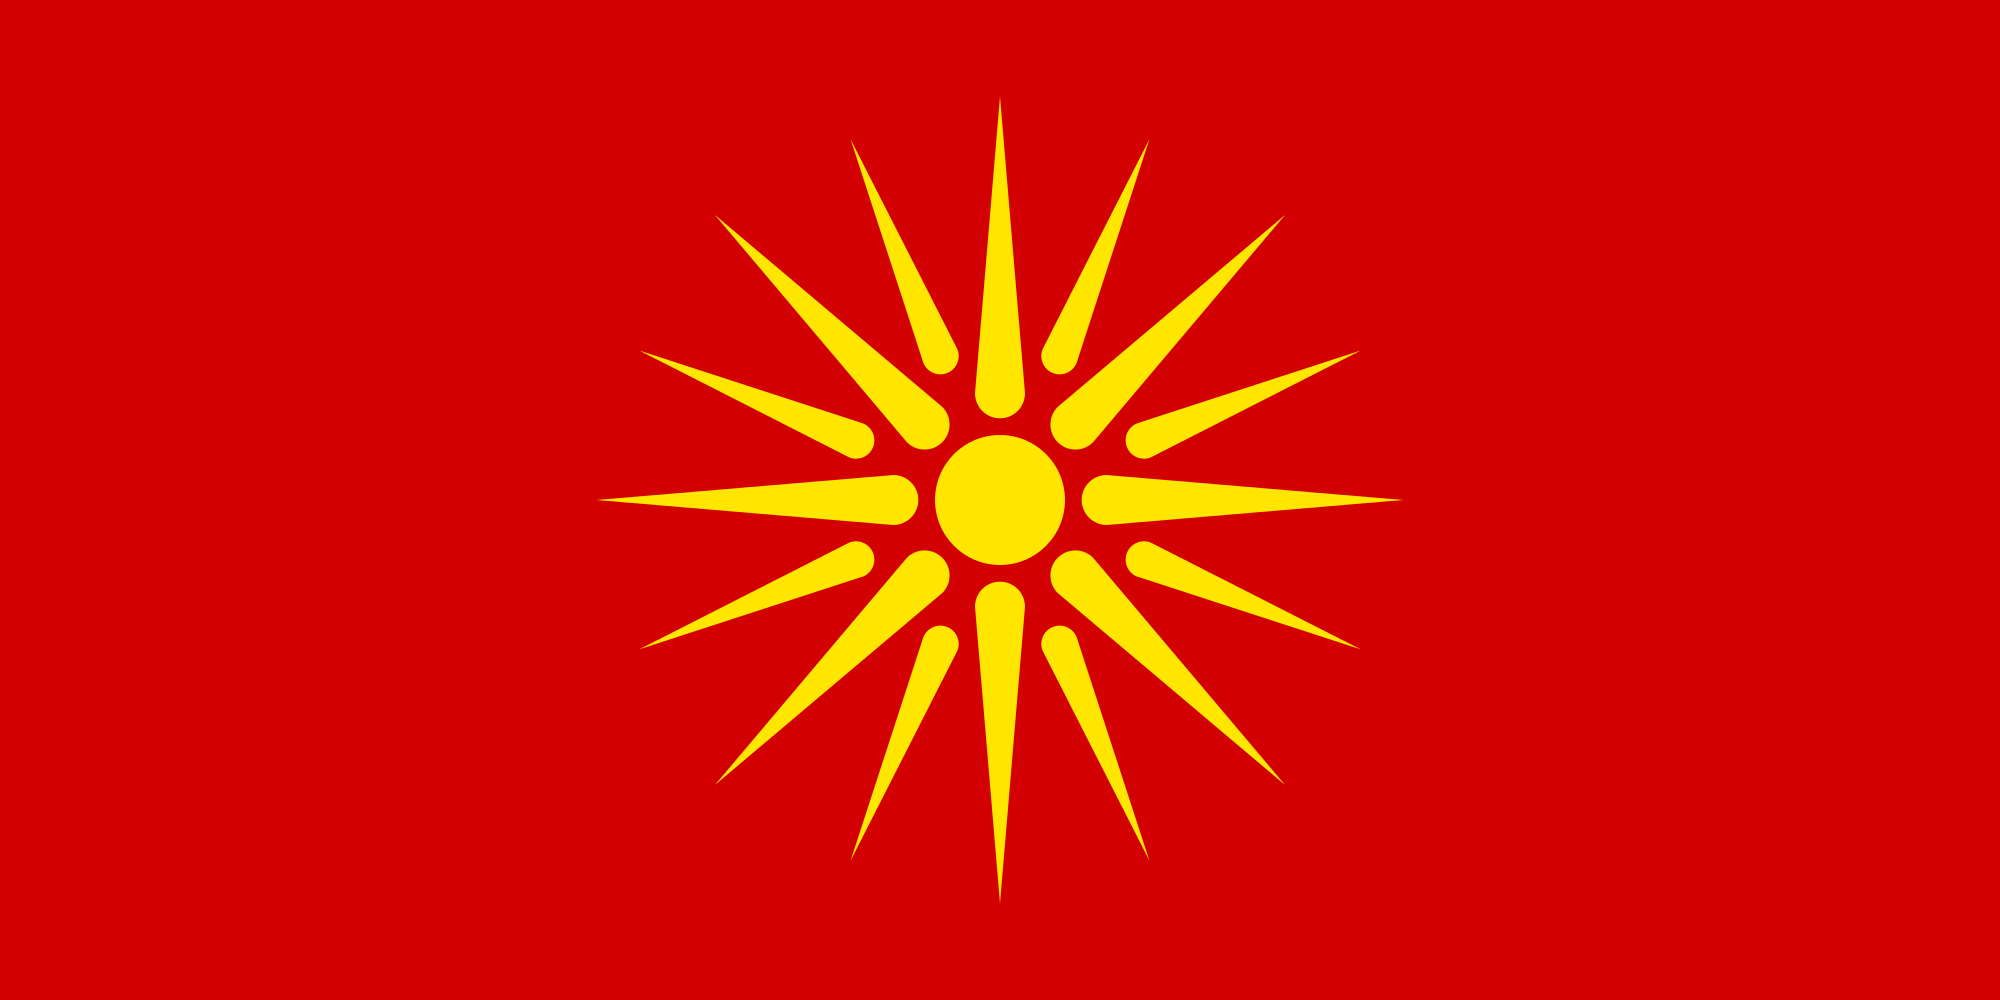 High Resolution Wallpaper   Flag Of The Republic Of Macedonia 2000x1000 px